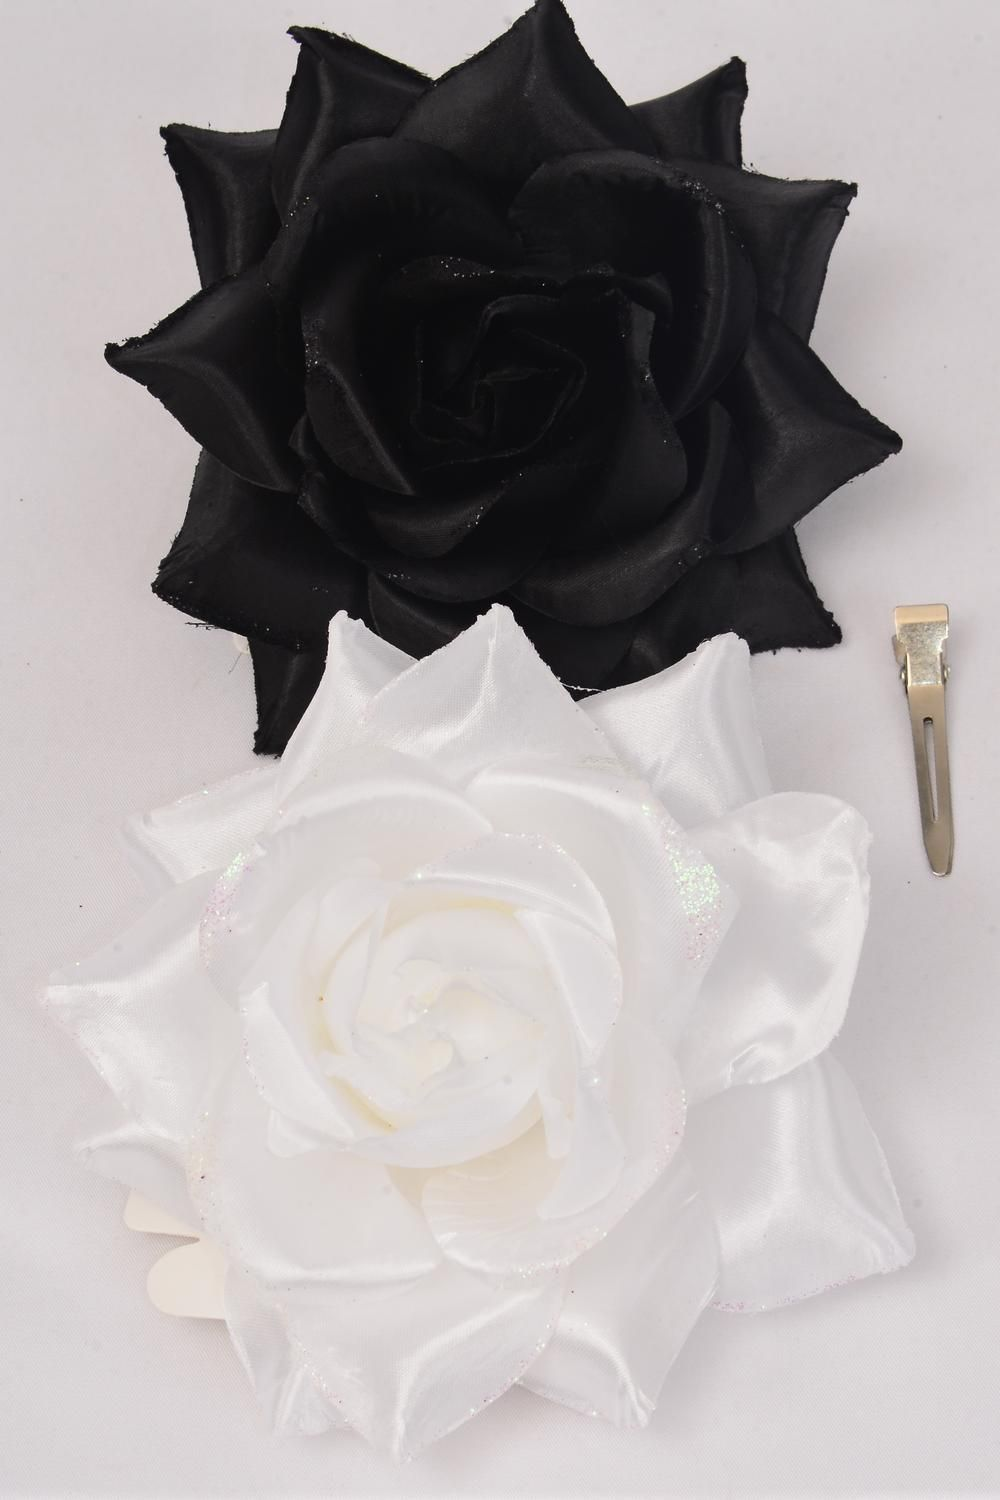 "Flower Silk Tea-Rose Large Glitter Trime Black & White Mix/DZ Size-5"" Wide,Alligator Clip & Brooch & Elastic,6 Black,6 White Asst,Hang Tag & UPC Code,W Clear Box"